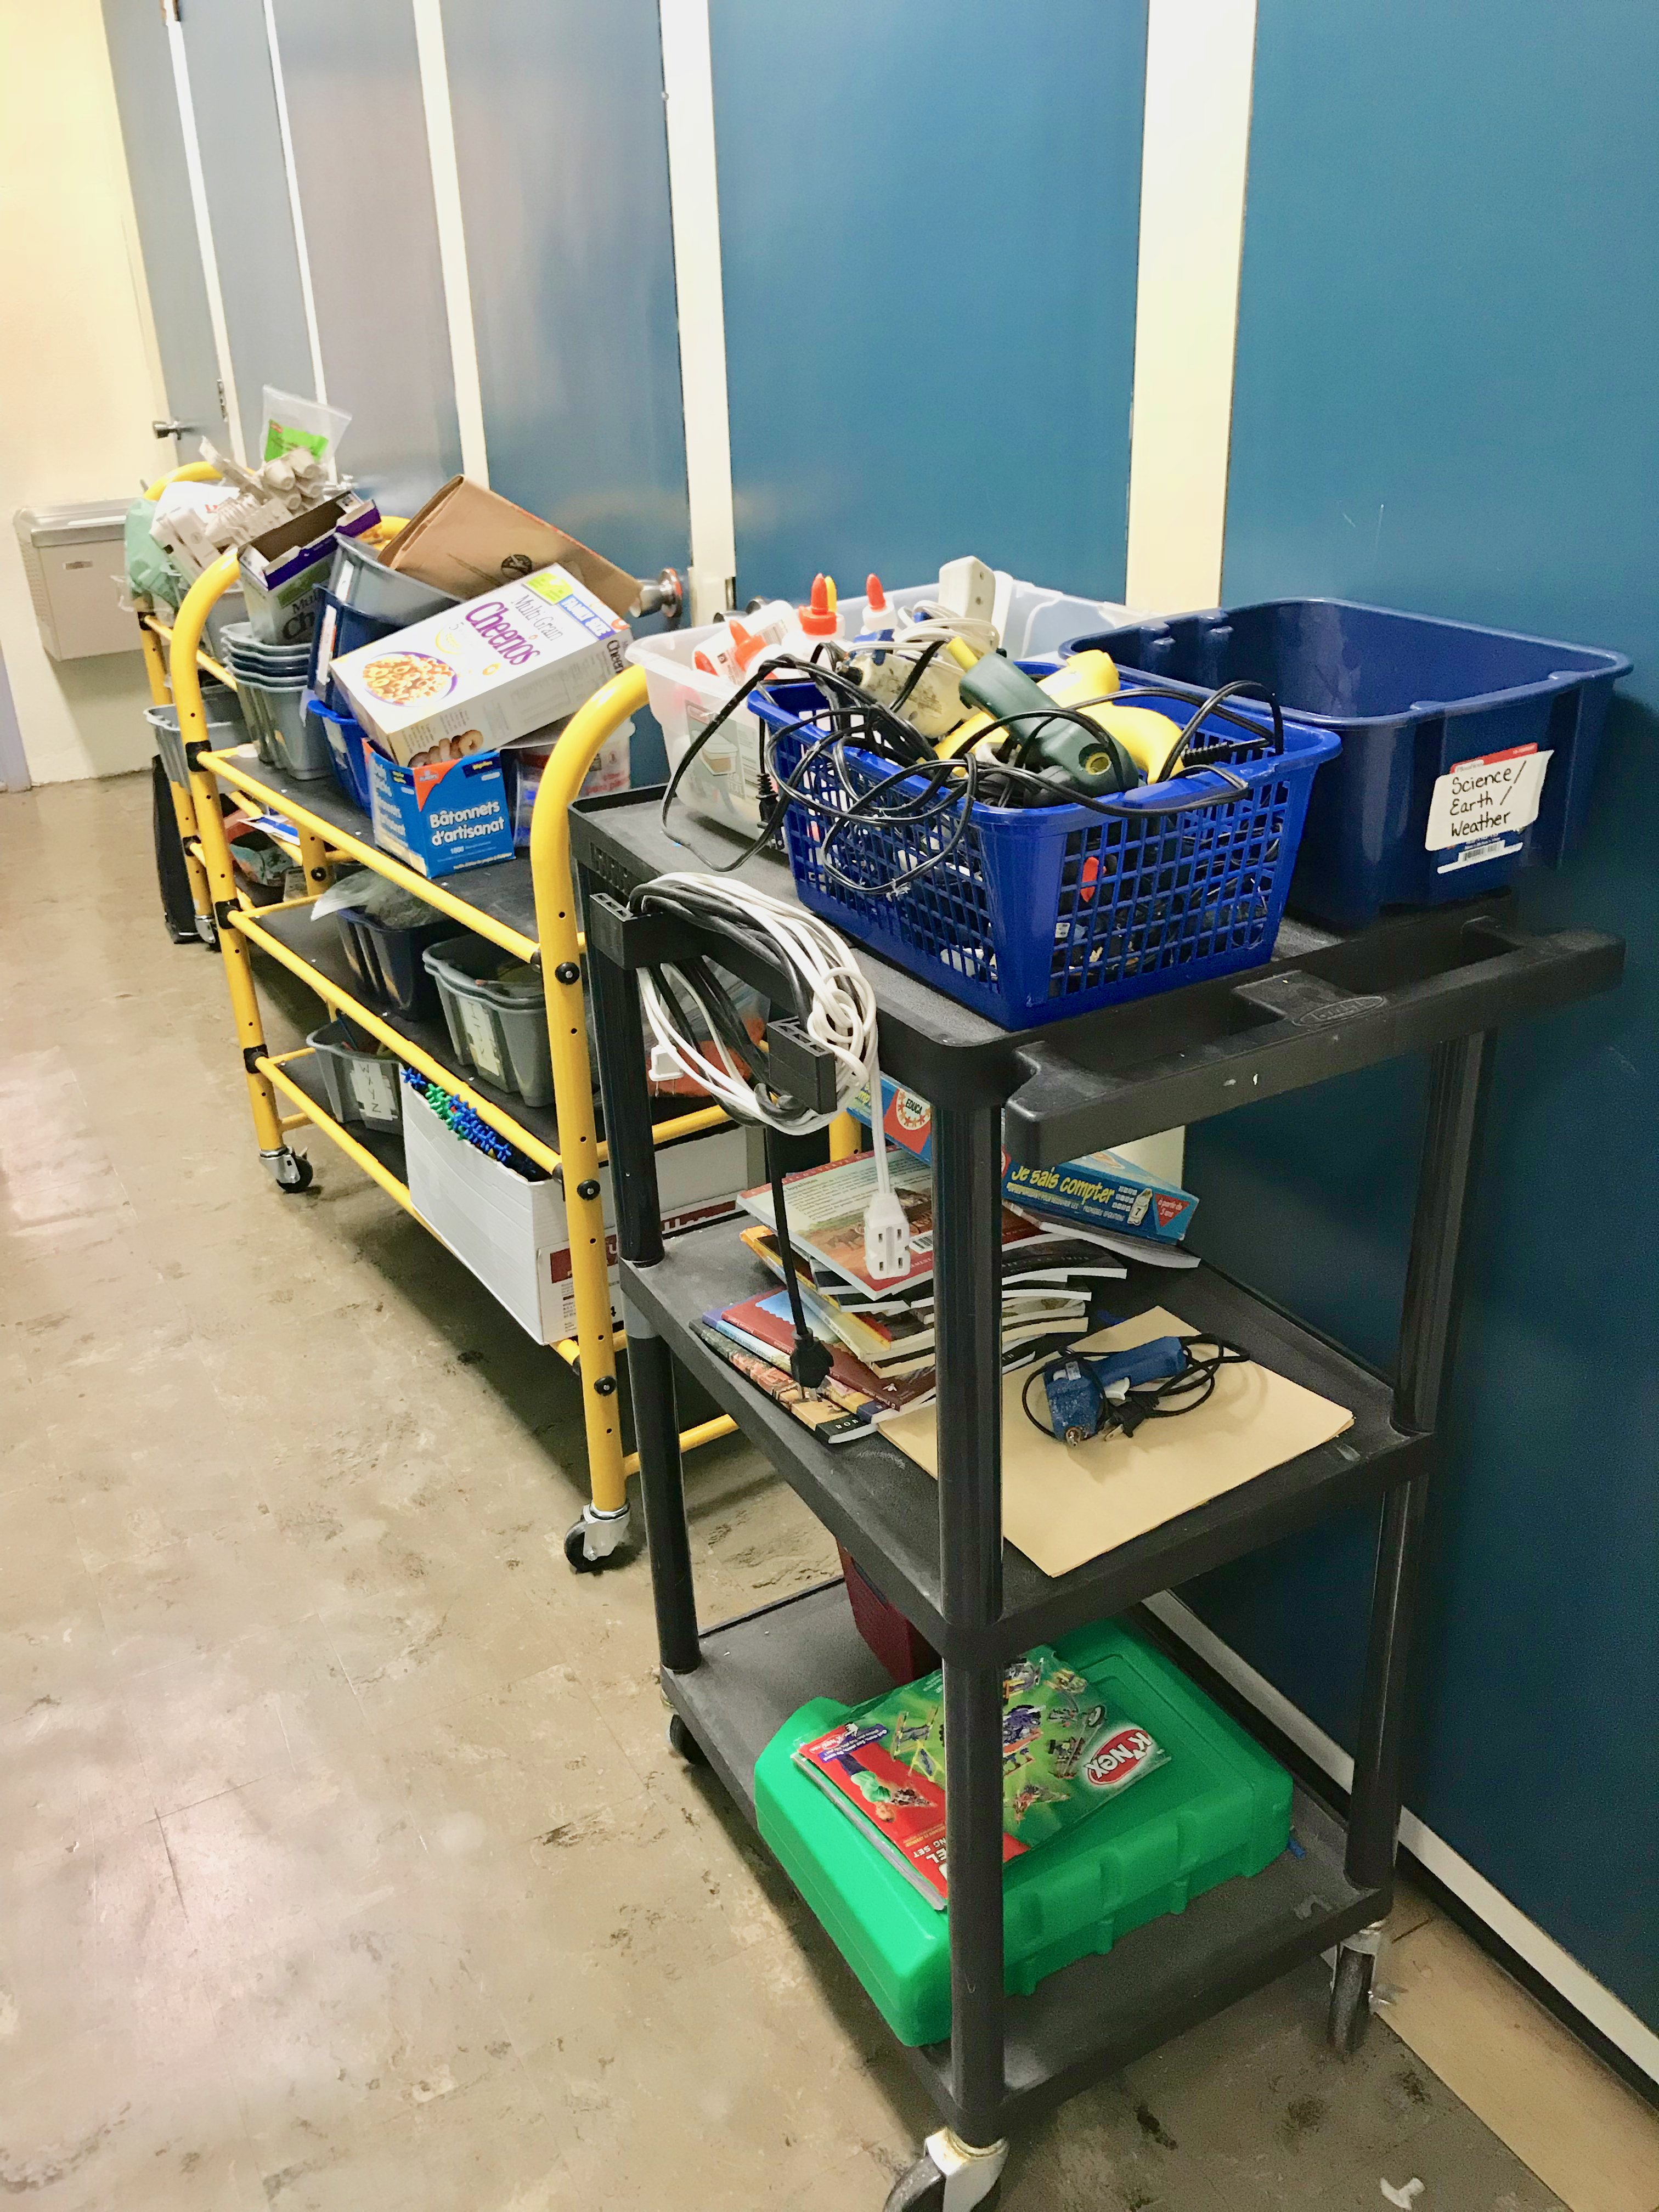 Carts for mobile Makerspaces